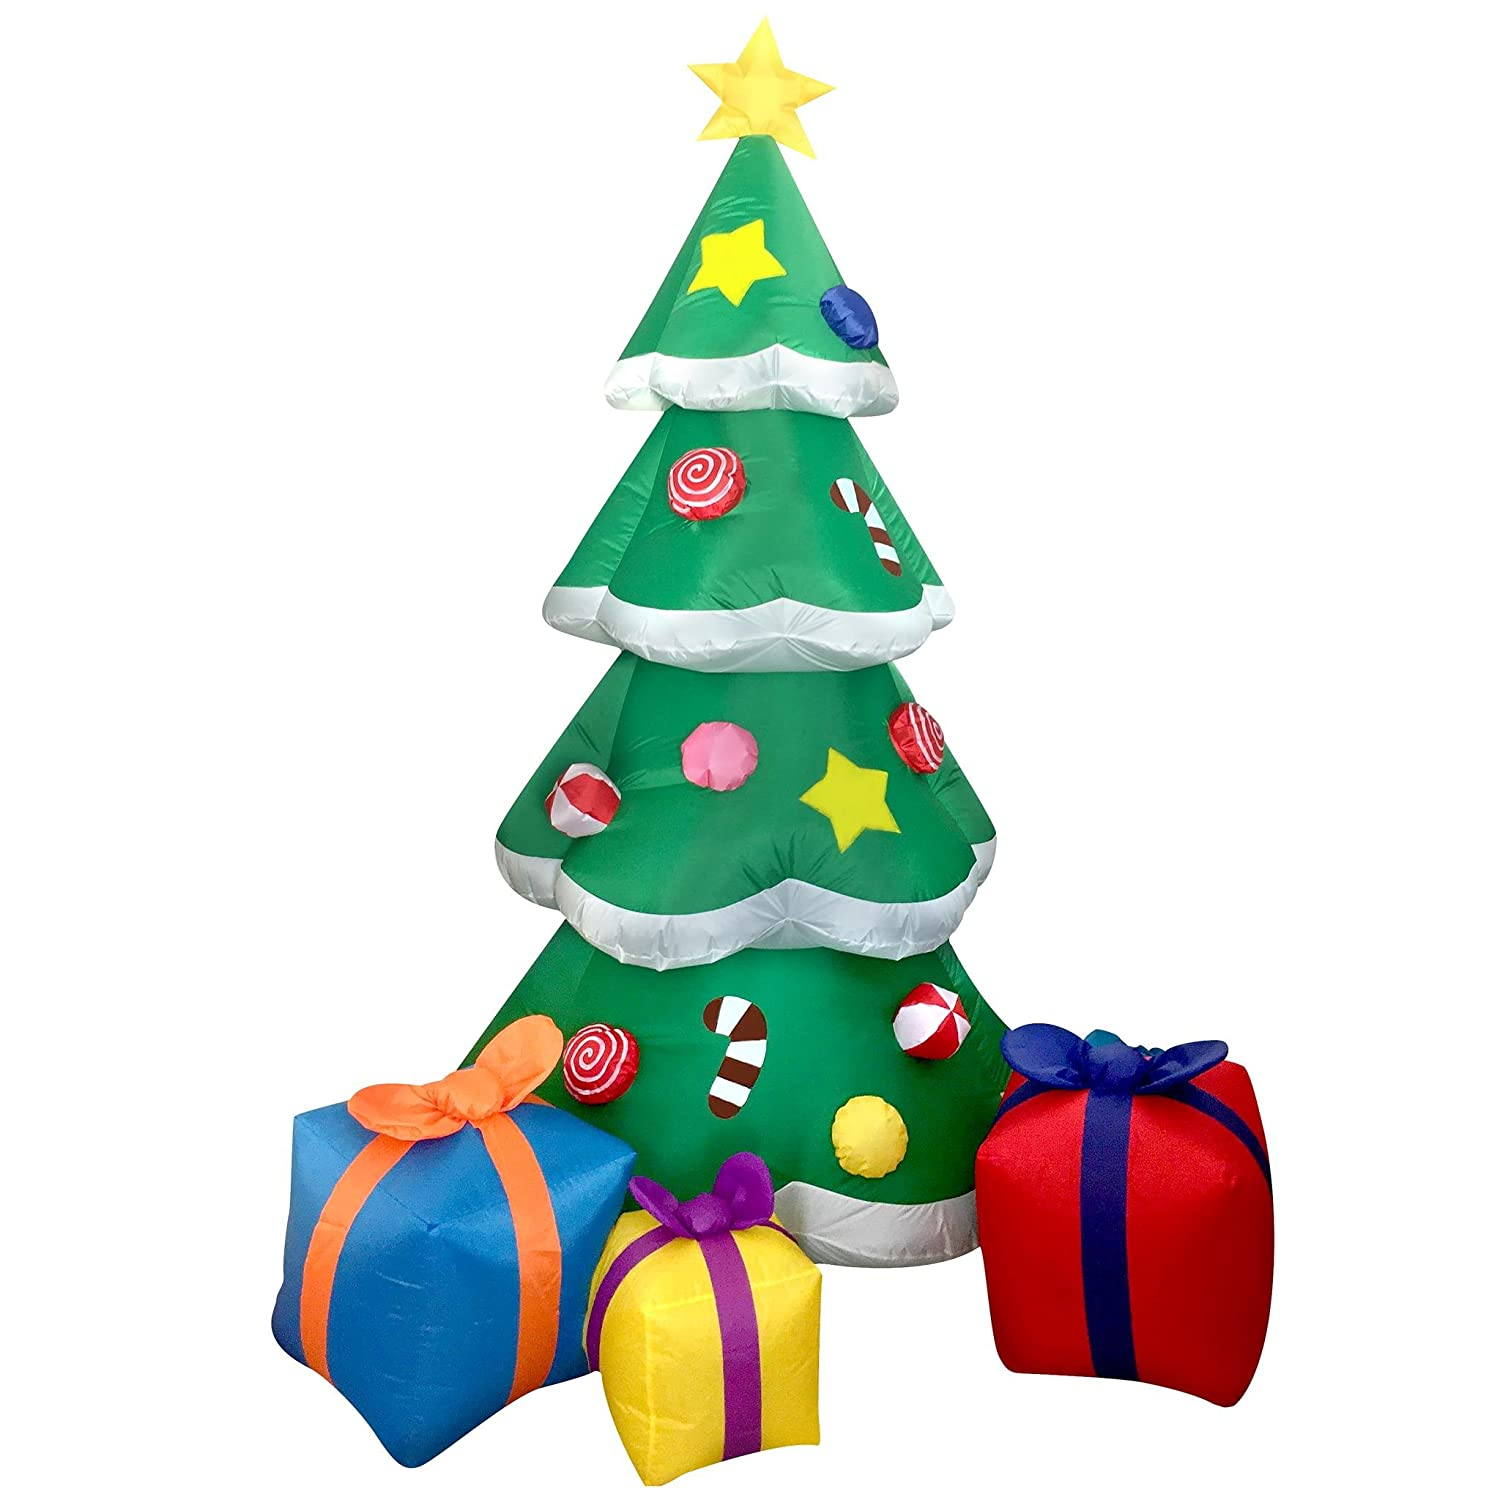 Joiedomi 7 Foot LED Light Up Giant Christmas Tree Inflatable with 3 ...